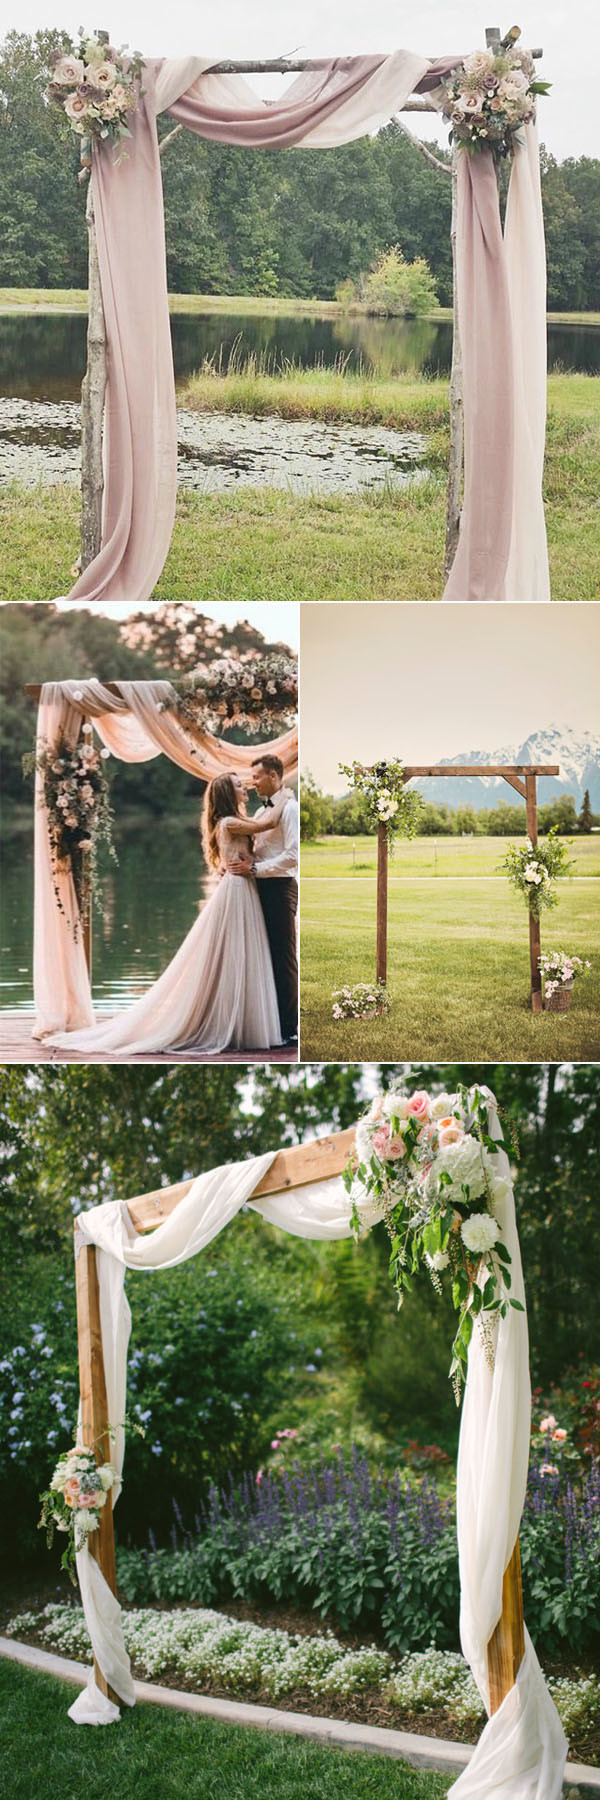 rustic wedding arches for your outdoor wedding ideas